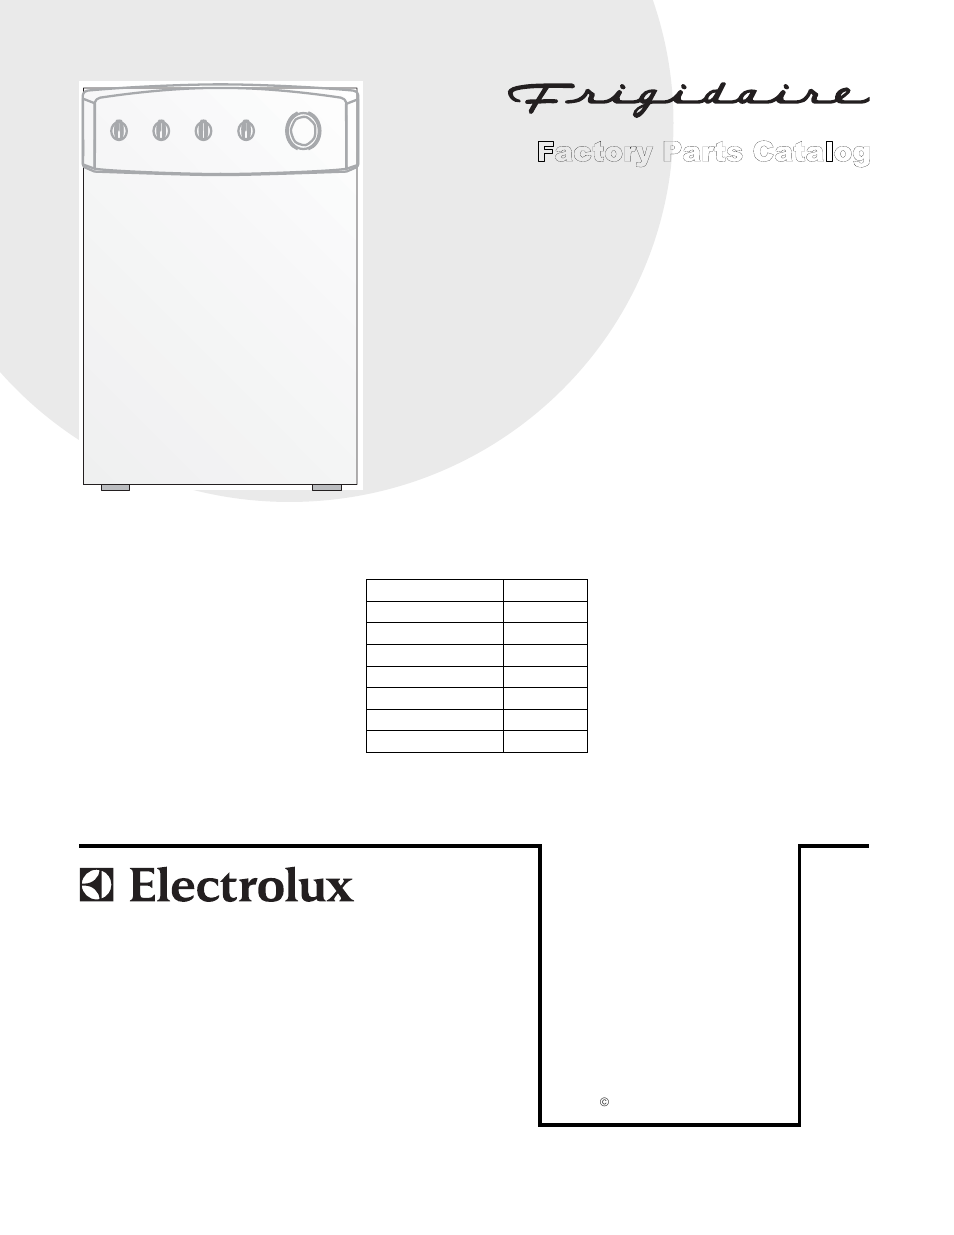 Electrolux Frigidaire Ftw3014kw0 User Manual 10 Pages Washing Machine Wiring Diagram